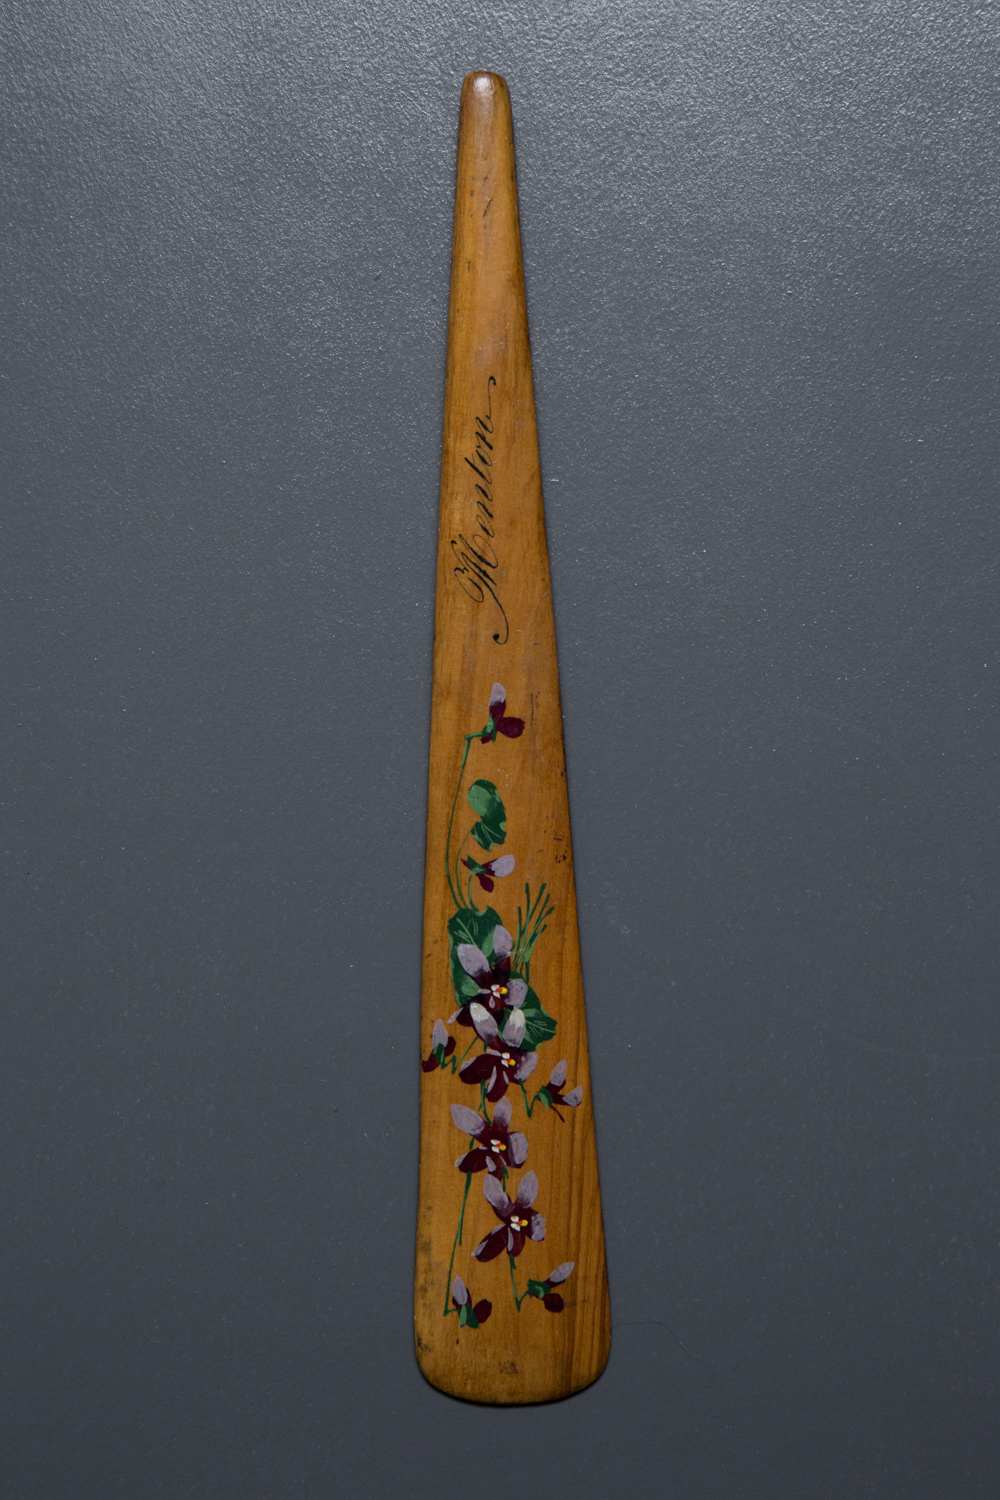 Hand Painted Souvenir 'Menton' Wooden Busk, c. 1850s, possibly France. The Underpinnings Museum. Photography by Tigz Rice